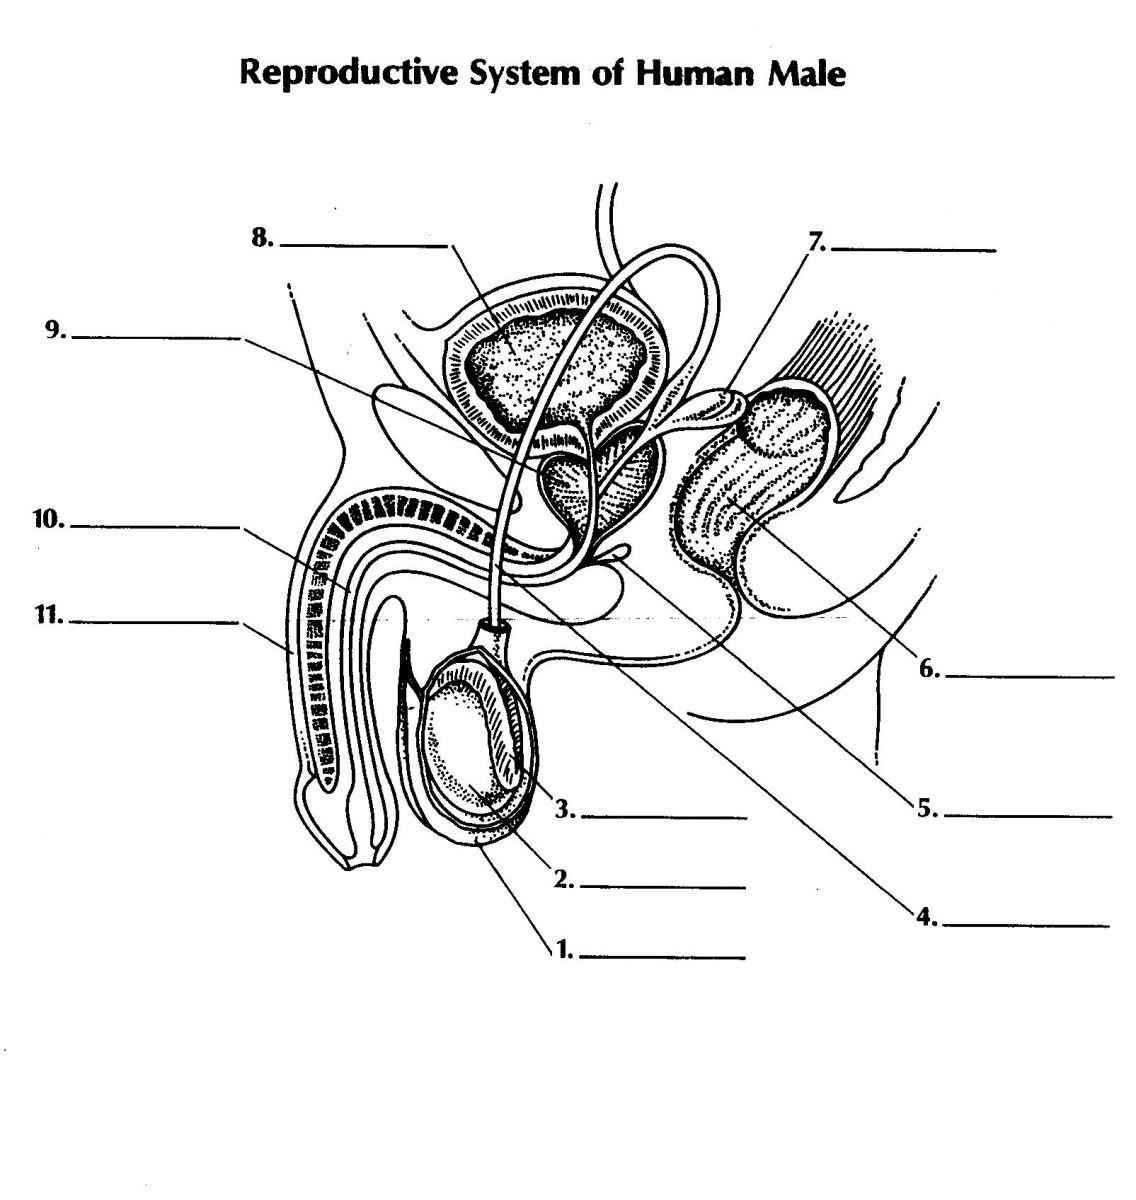 worksheet Human Reproduction Worksheet reproductive system of the human male proprofs quiz 4